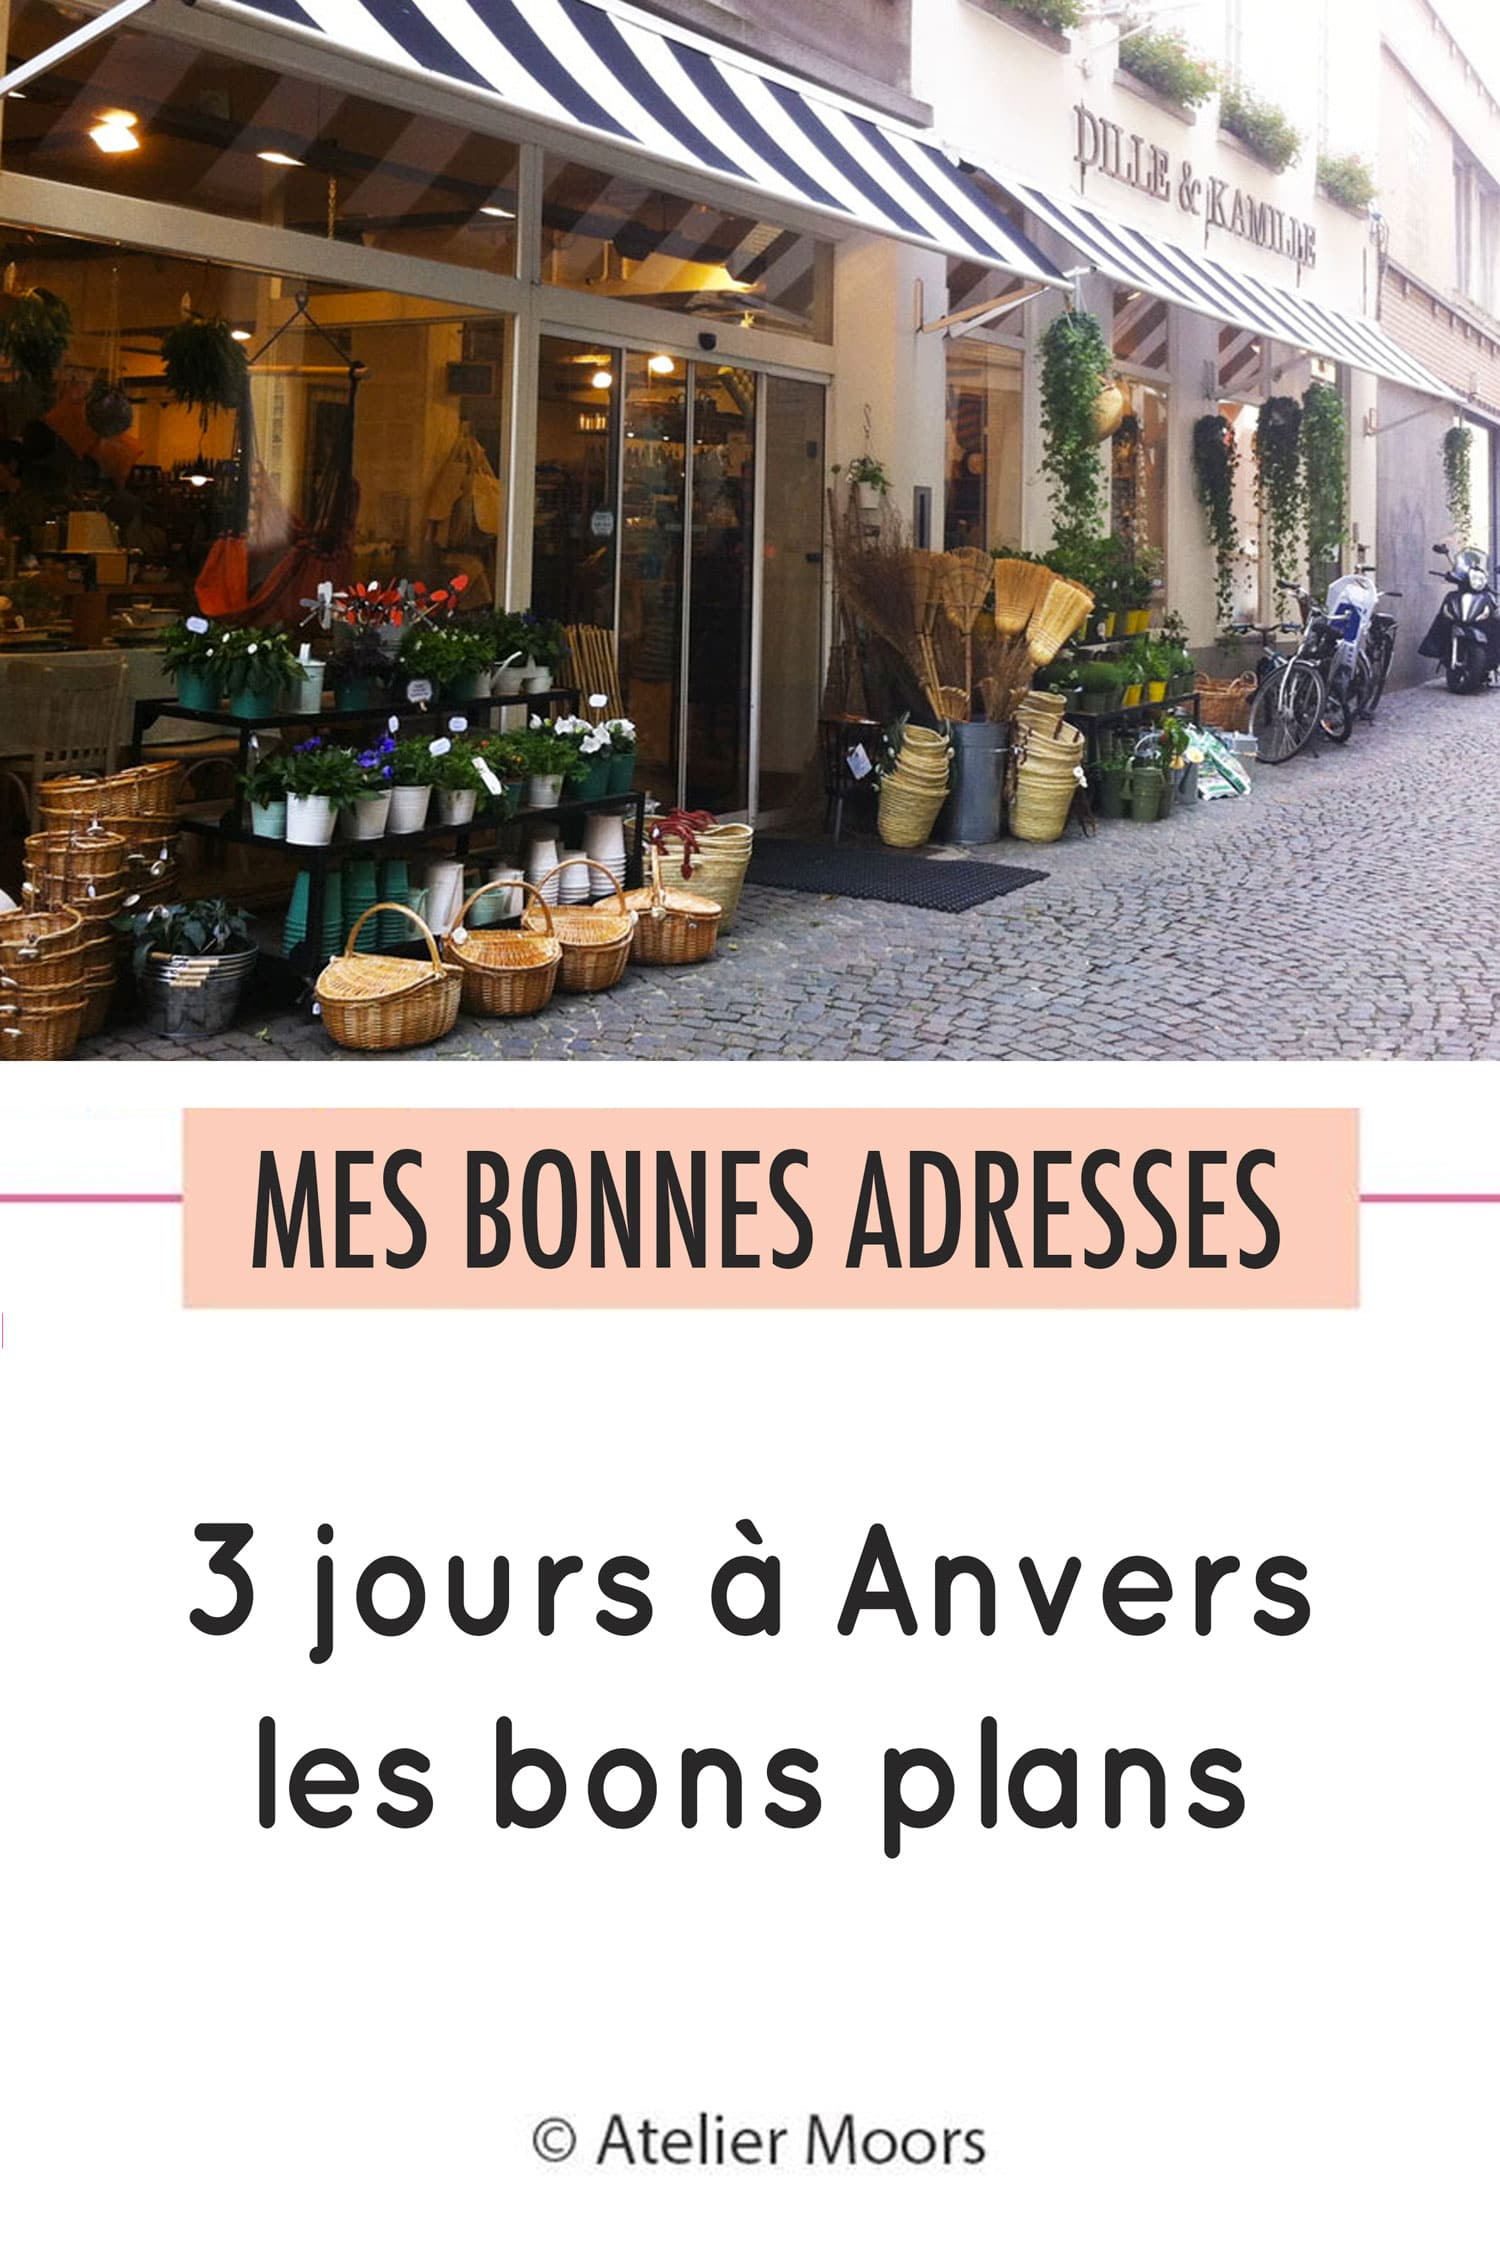 anvers les bons plans